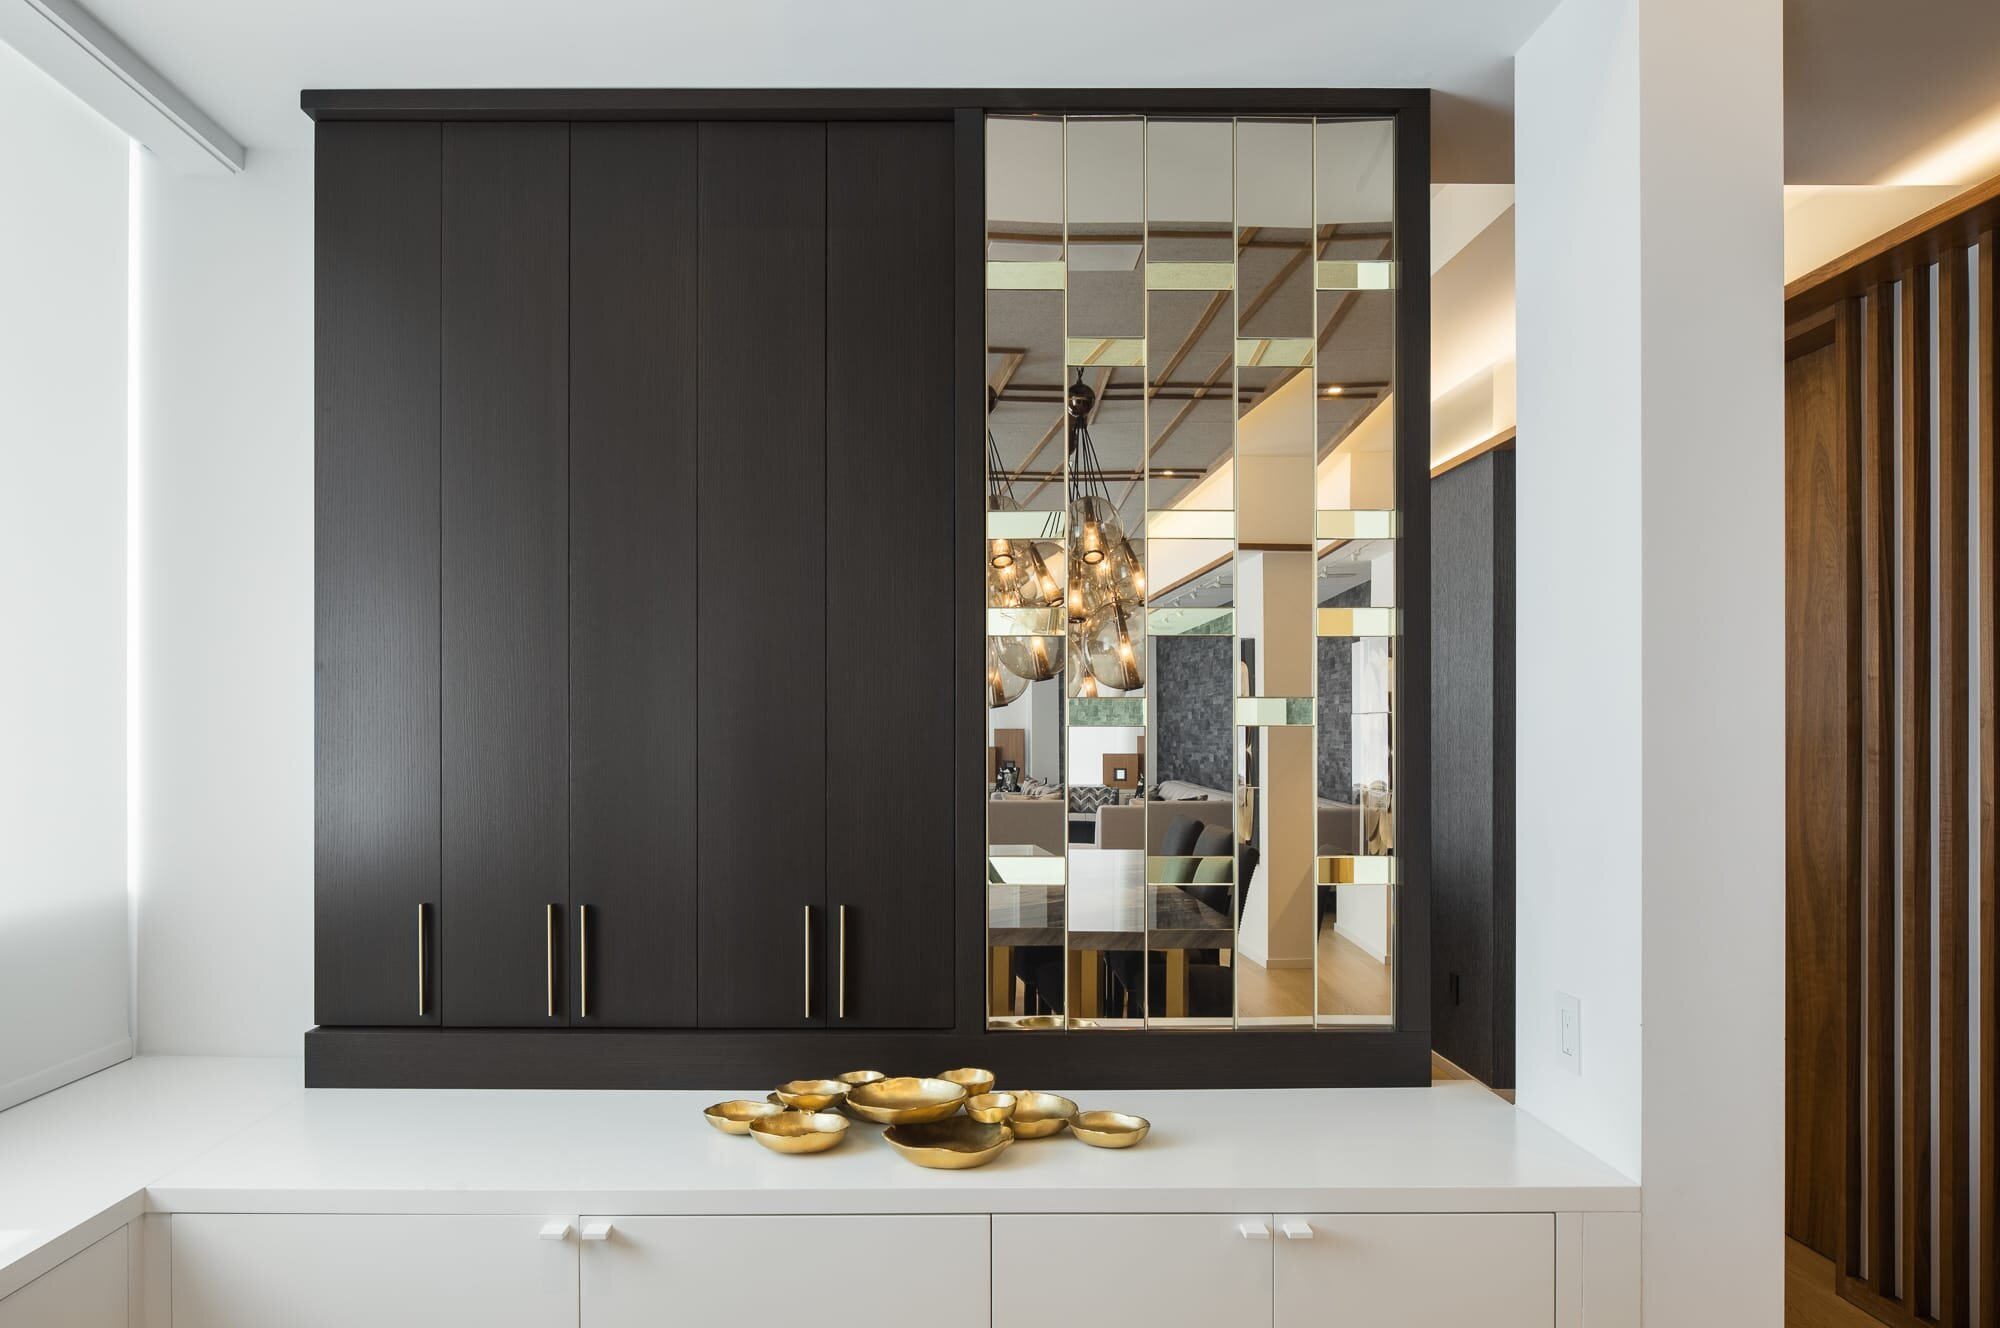 Dining room details designed by Andrew Wilkinson Architect